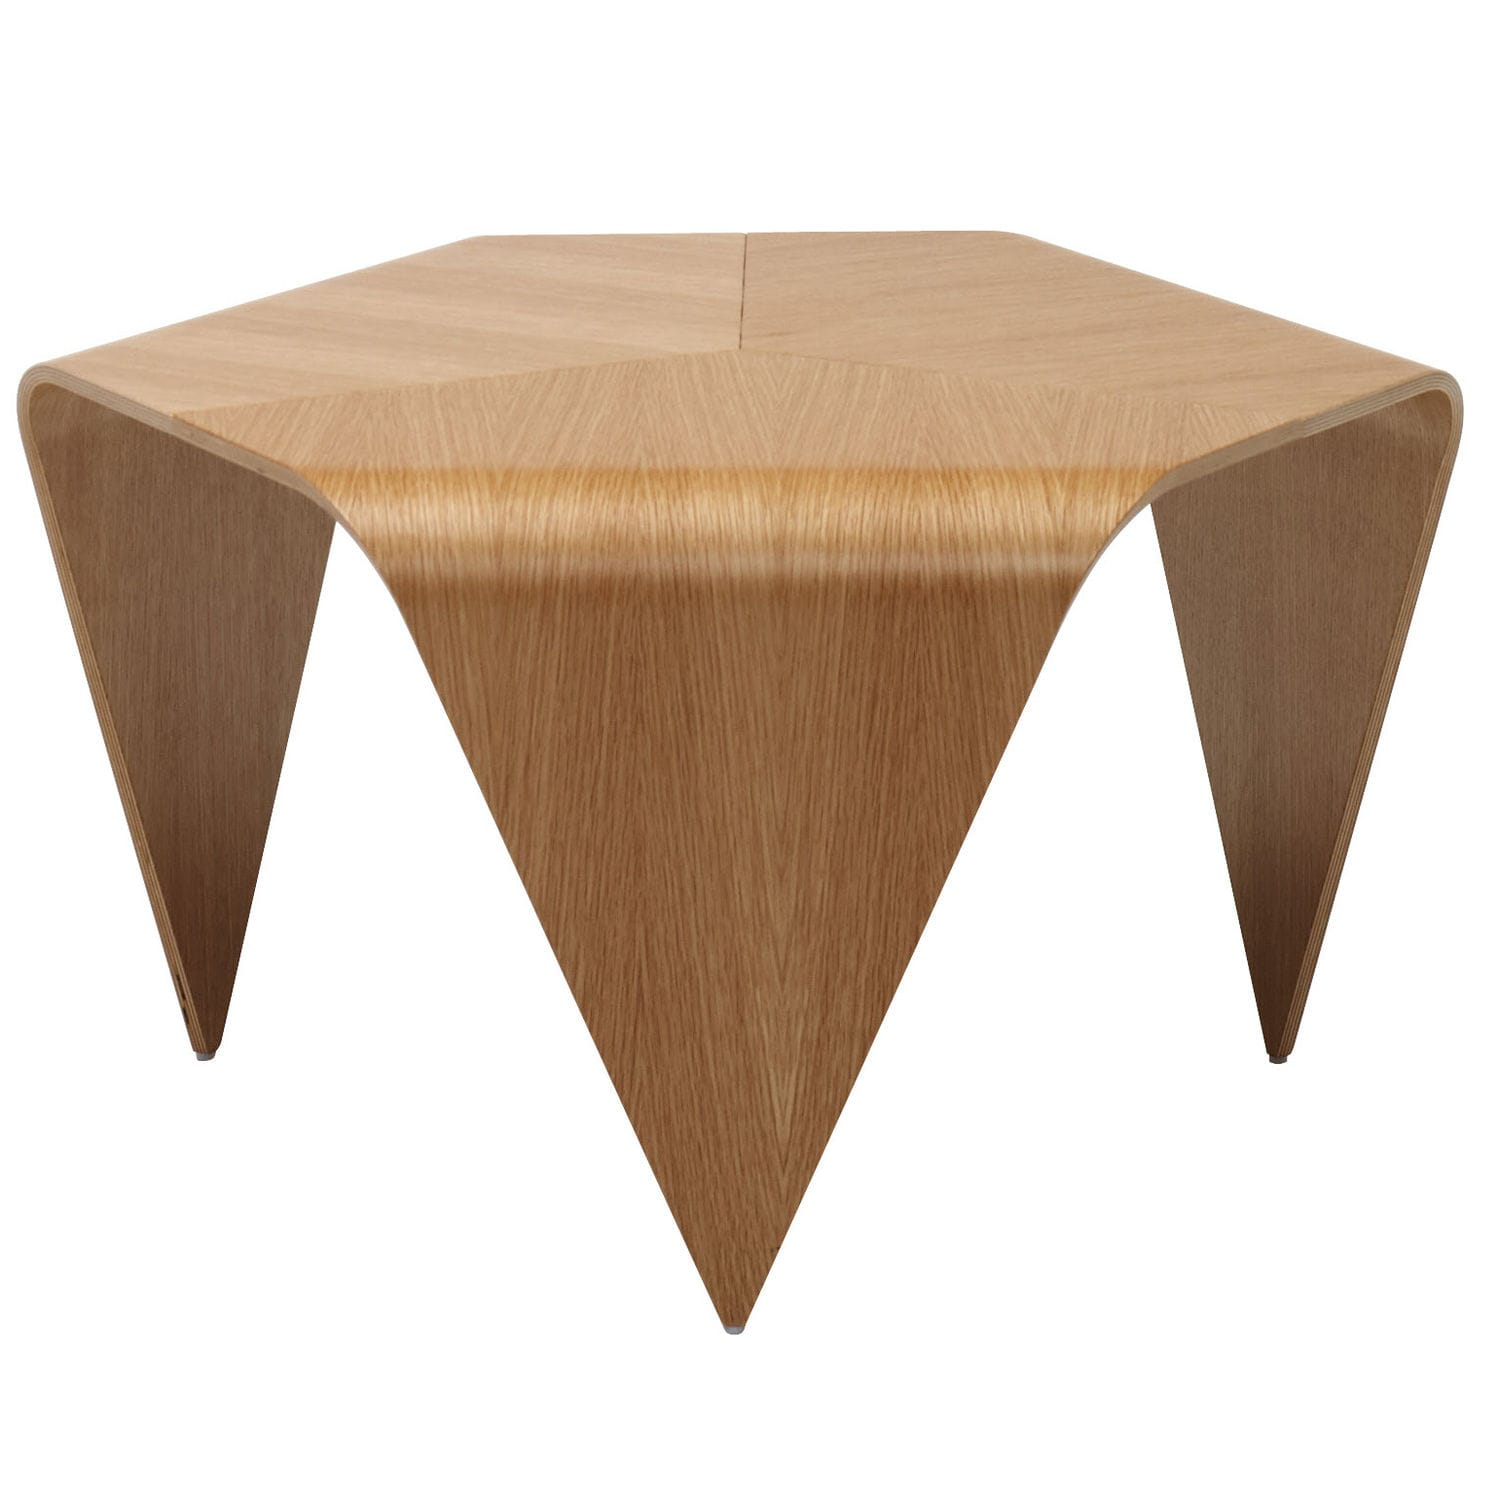 Birch Coffee Table Coffee Table Contemporary Walnut Lacquered Wood Trienna By